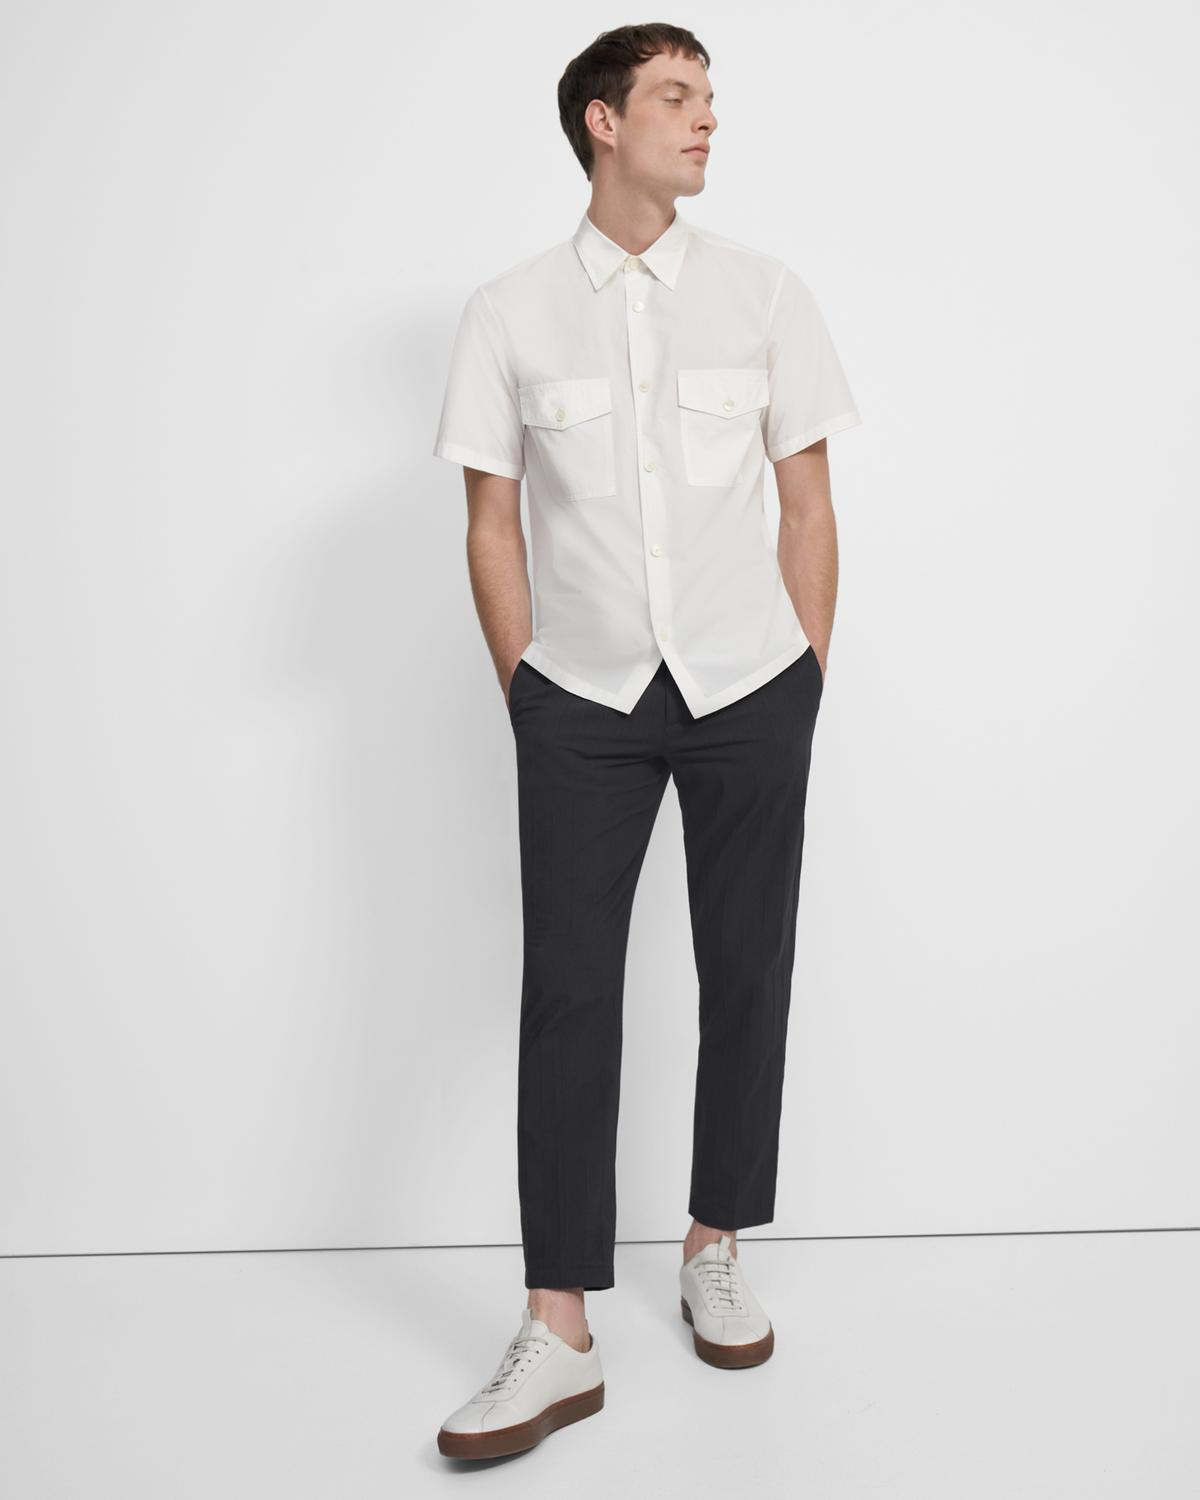 Patch Pocket Shirt in Garment Washed Cotton